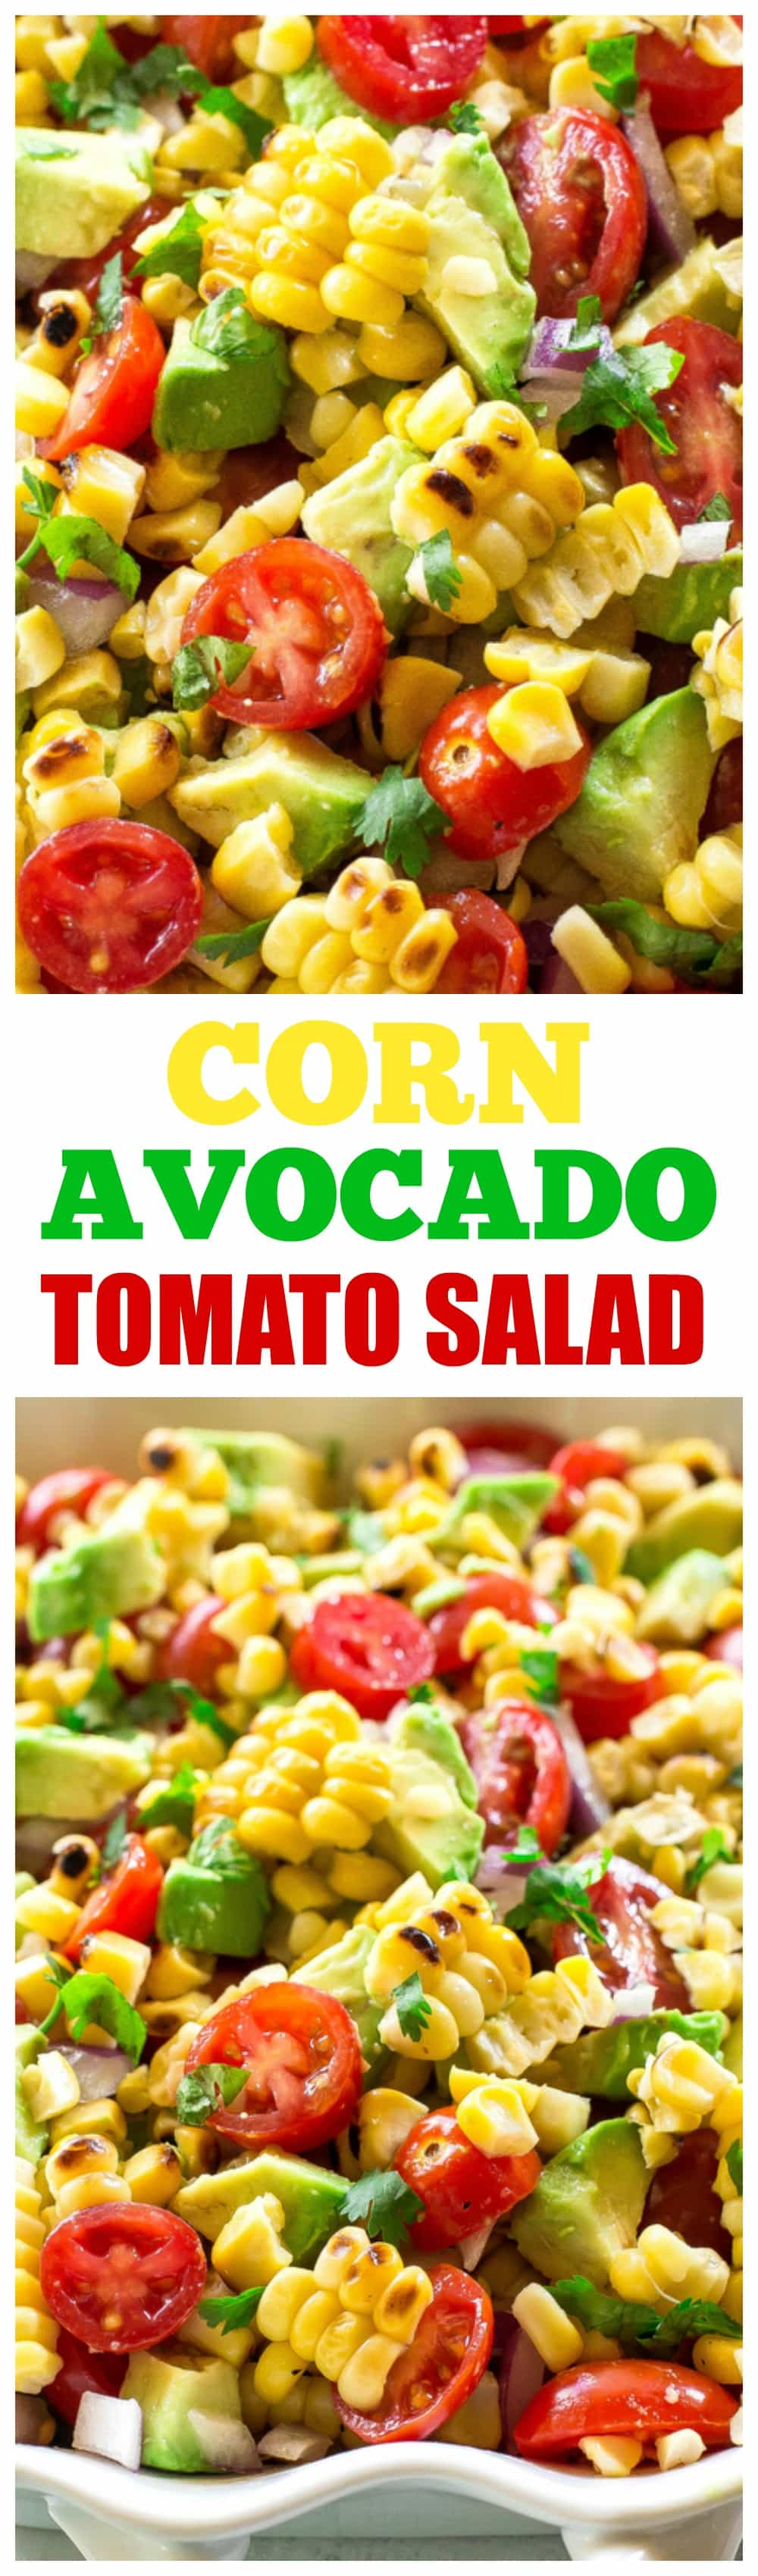 Fresh Corn, Avocado, and Tomato Salad - The Girl Who Ate Everything